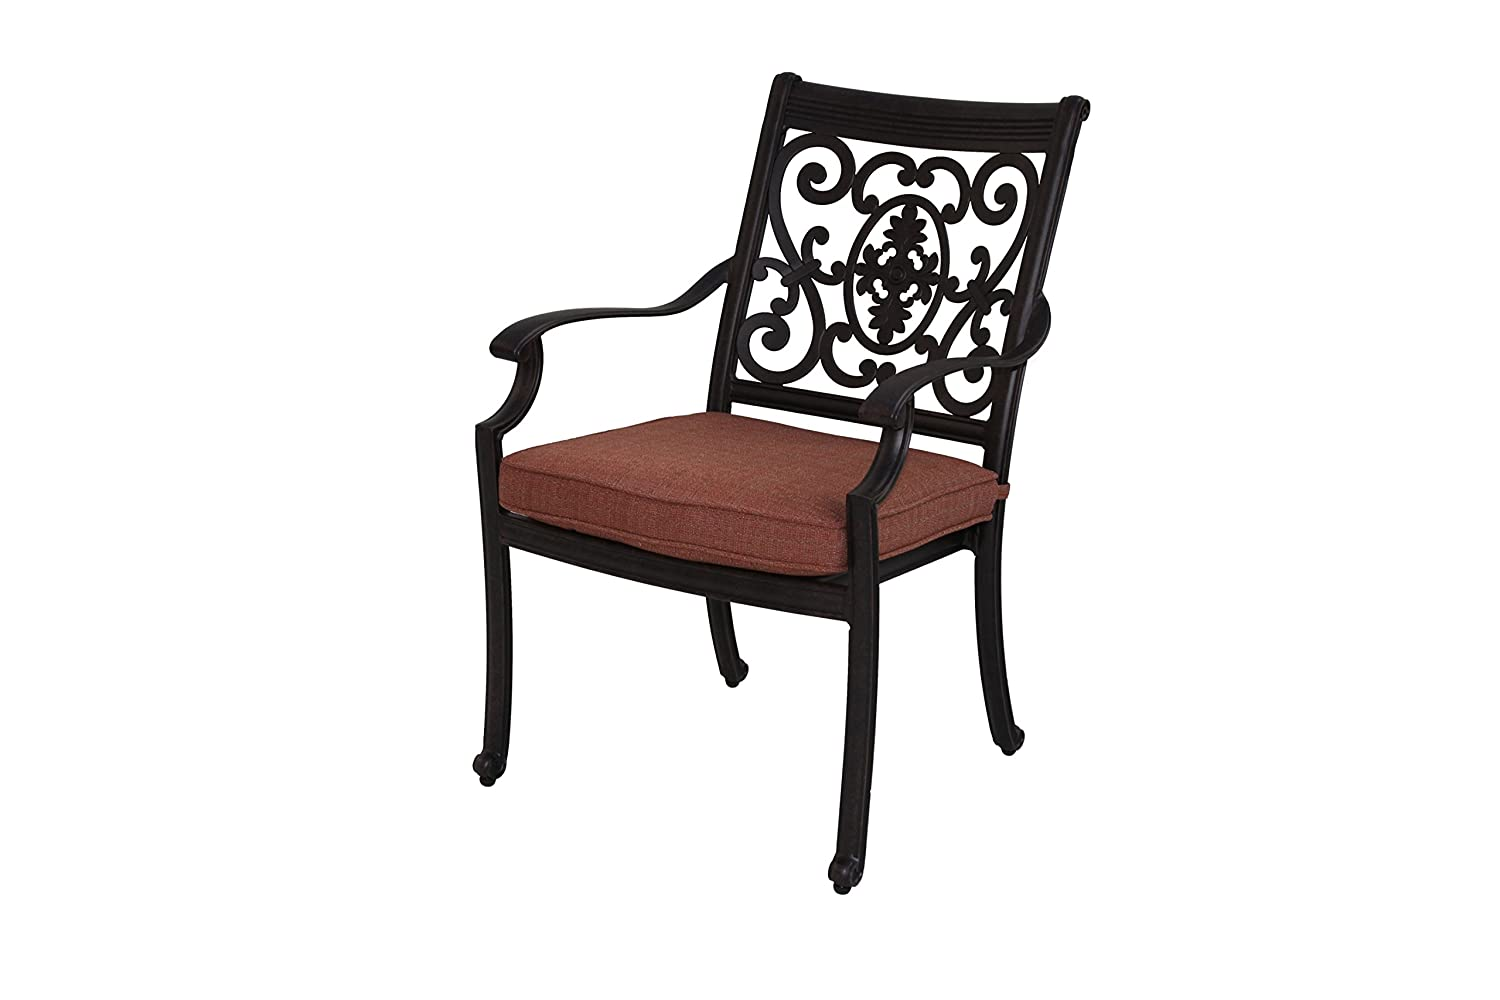 Amazon com darlee st cruz cast aluminum dining chairs with seat cushions set of four antique bronze finish garden outdoor